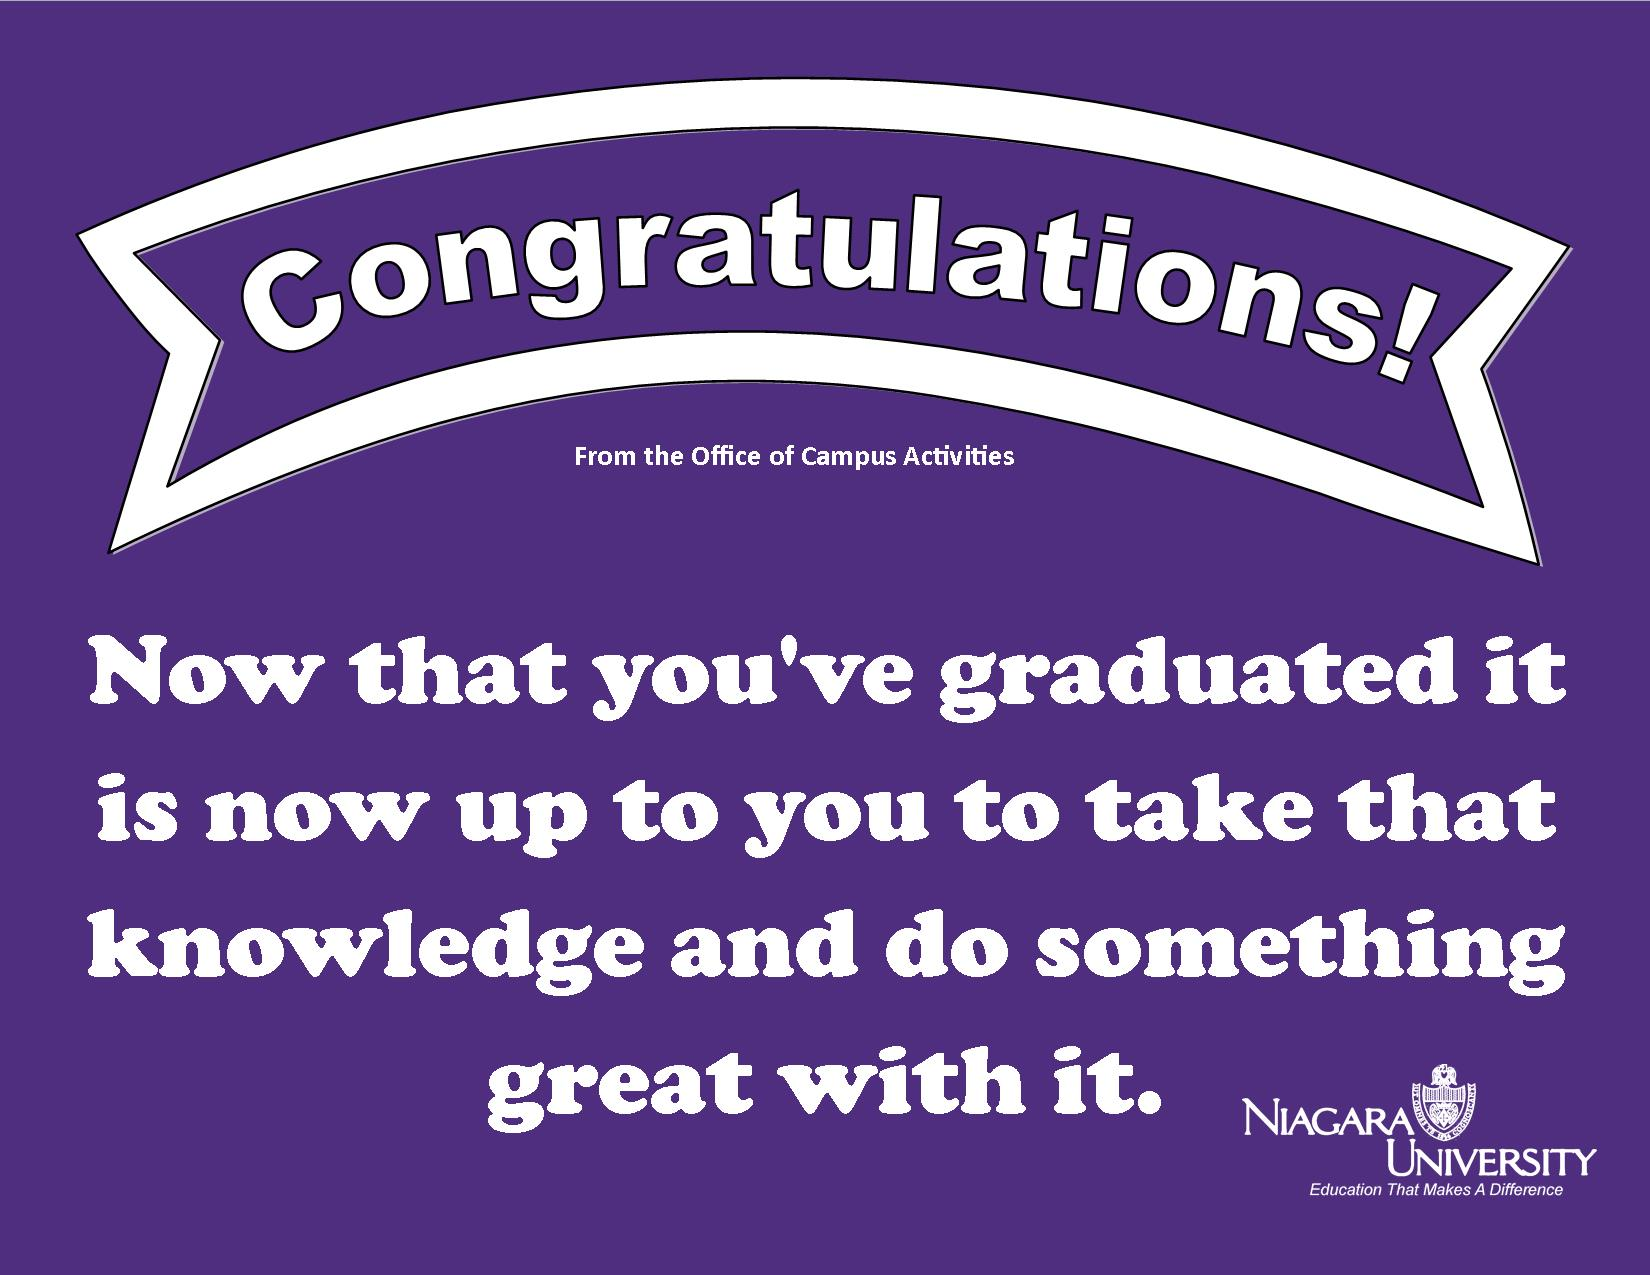 Send Graduation Messages For Llgc Signage Daily Post